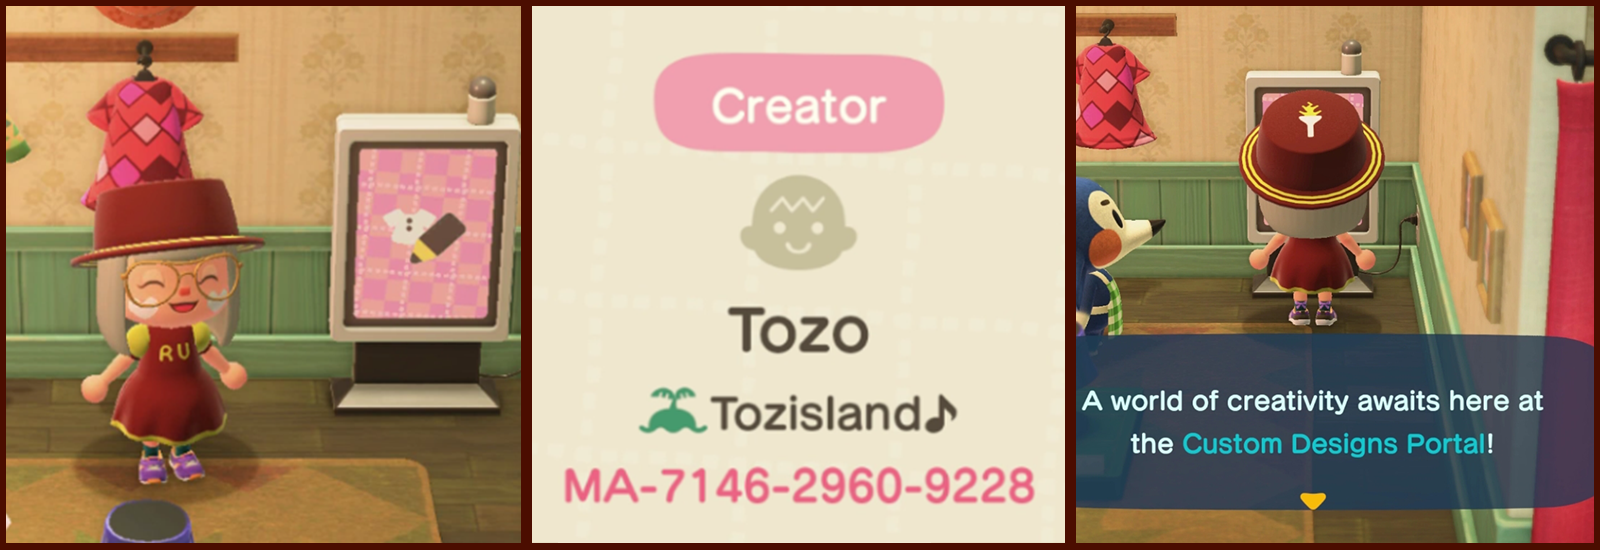 Able Sisters' shop and creator code inside Animal Crossing